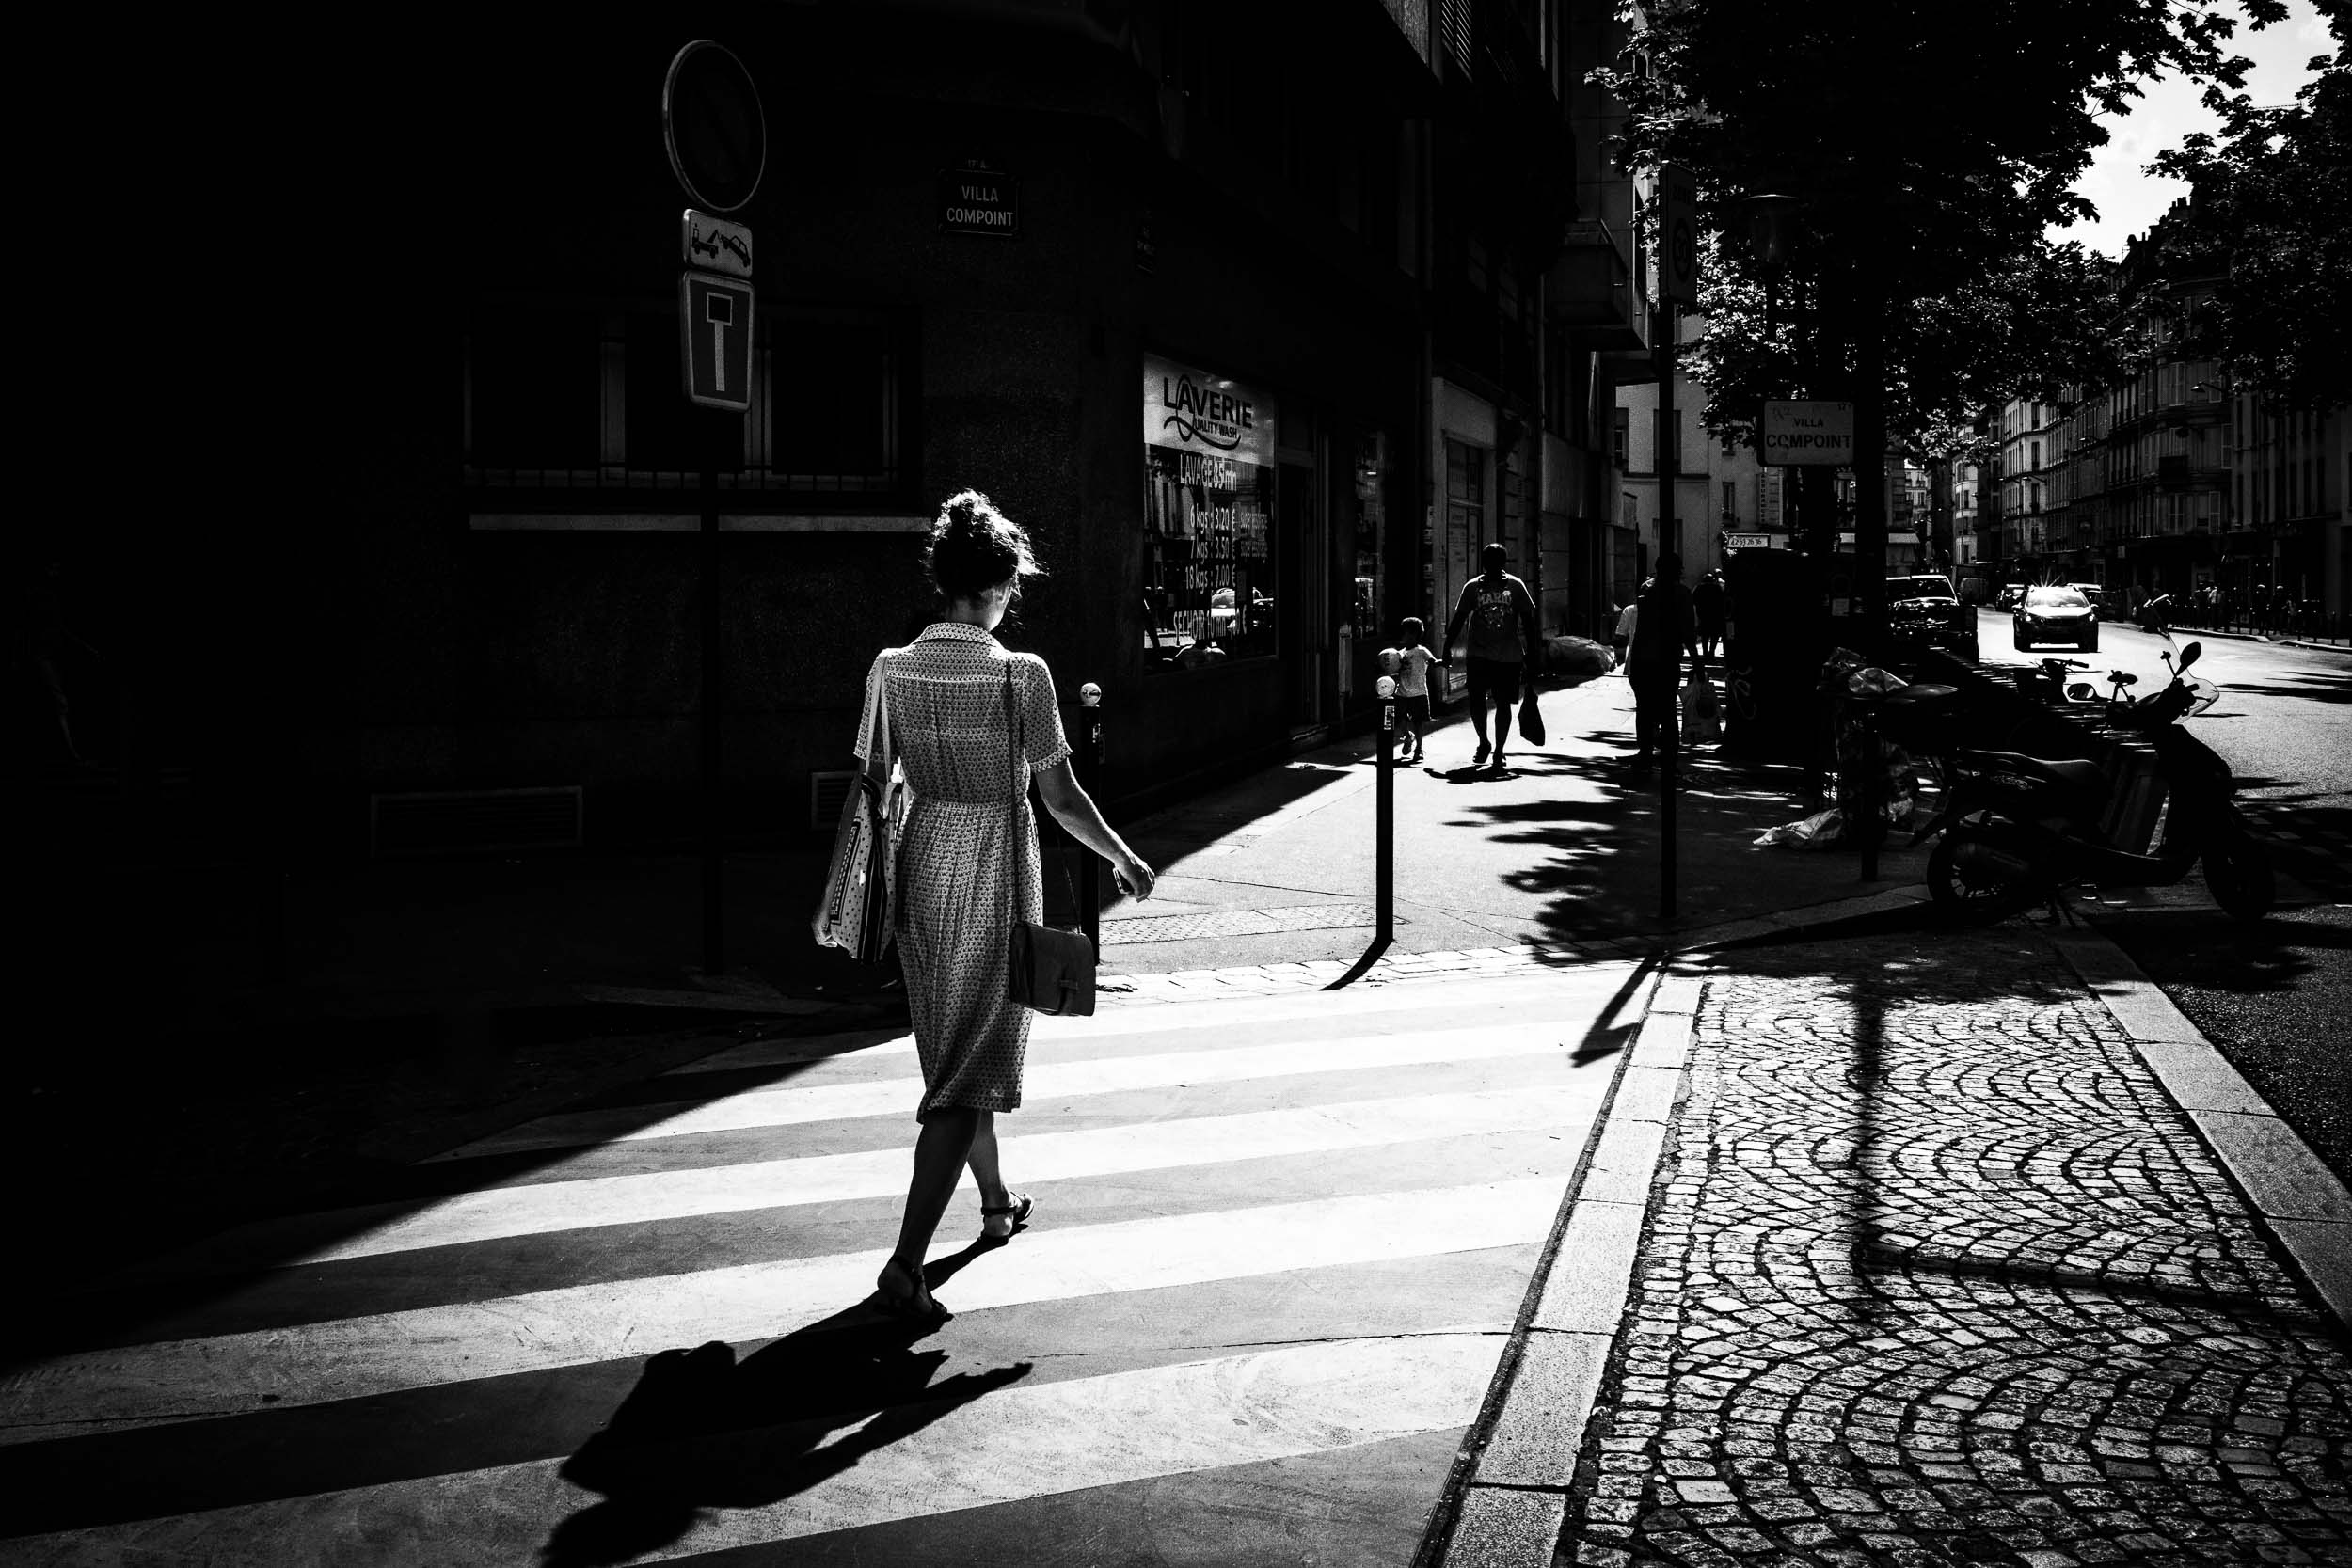 Paris-woman-crossing-street-contrasted-light.jpg